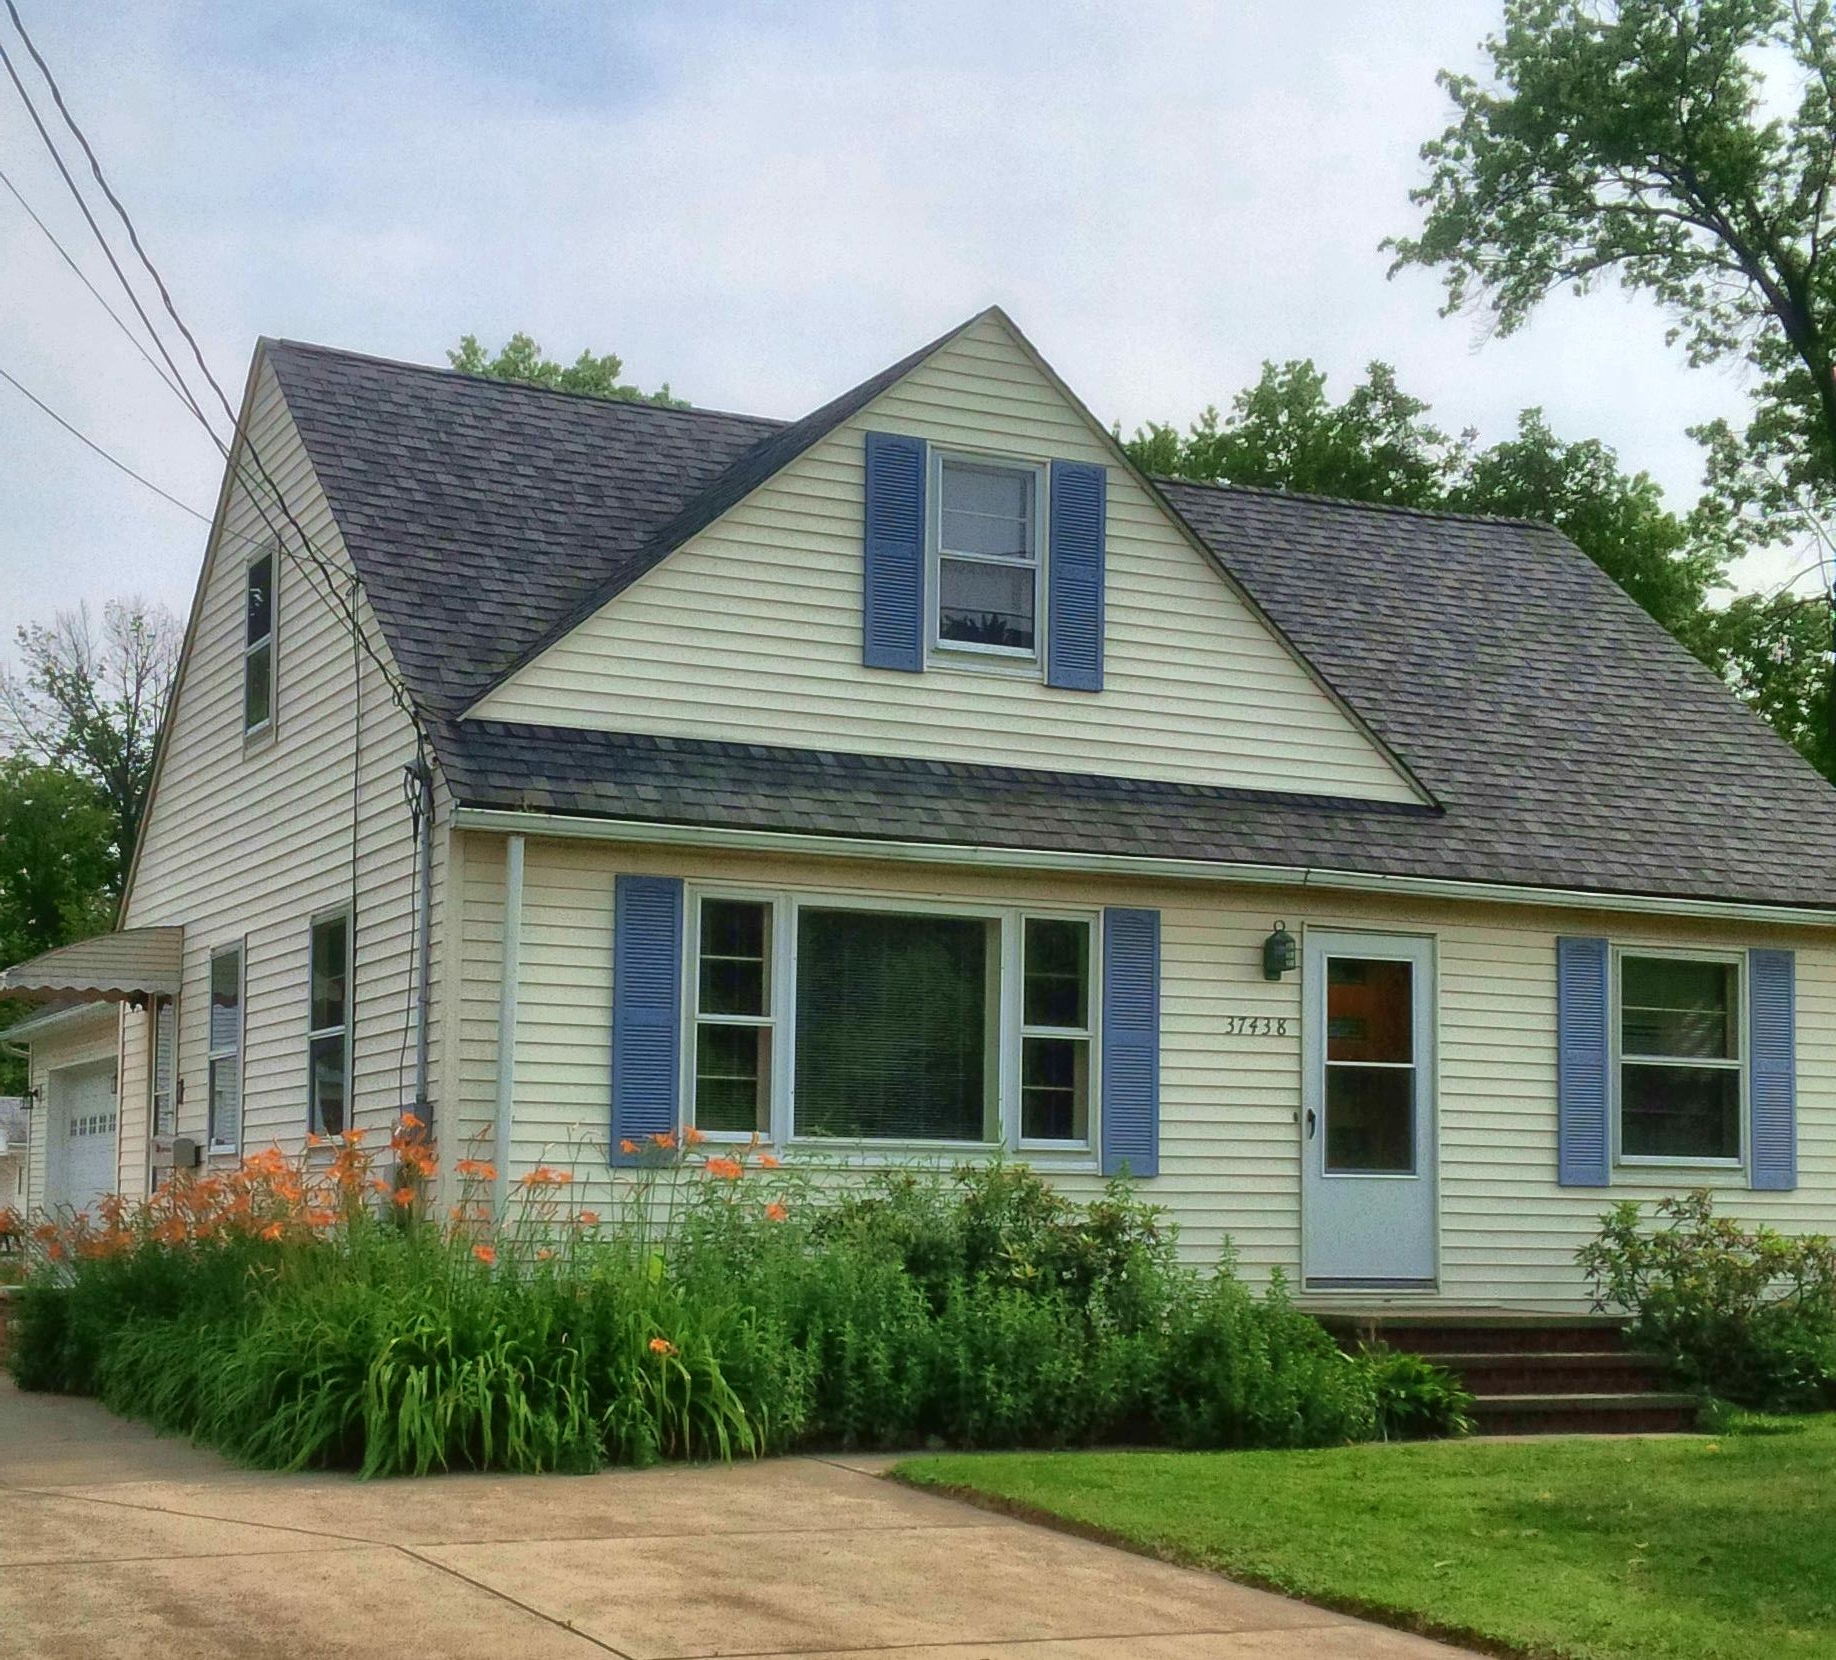 37438 Sharpe Ave, Willoughby, Ohio 44094